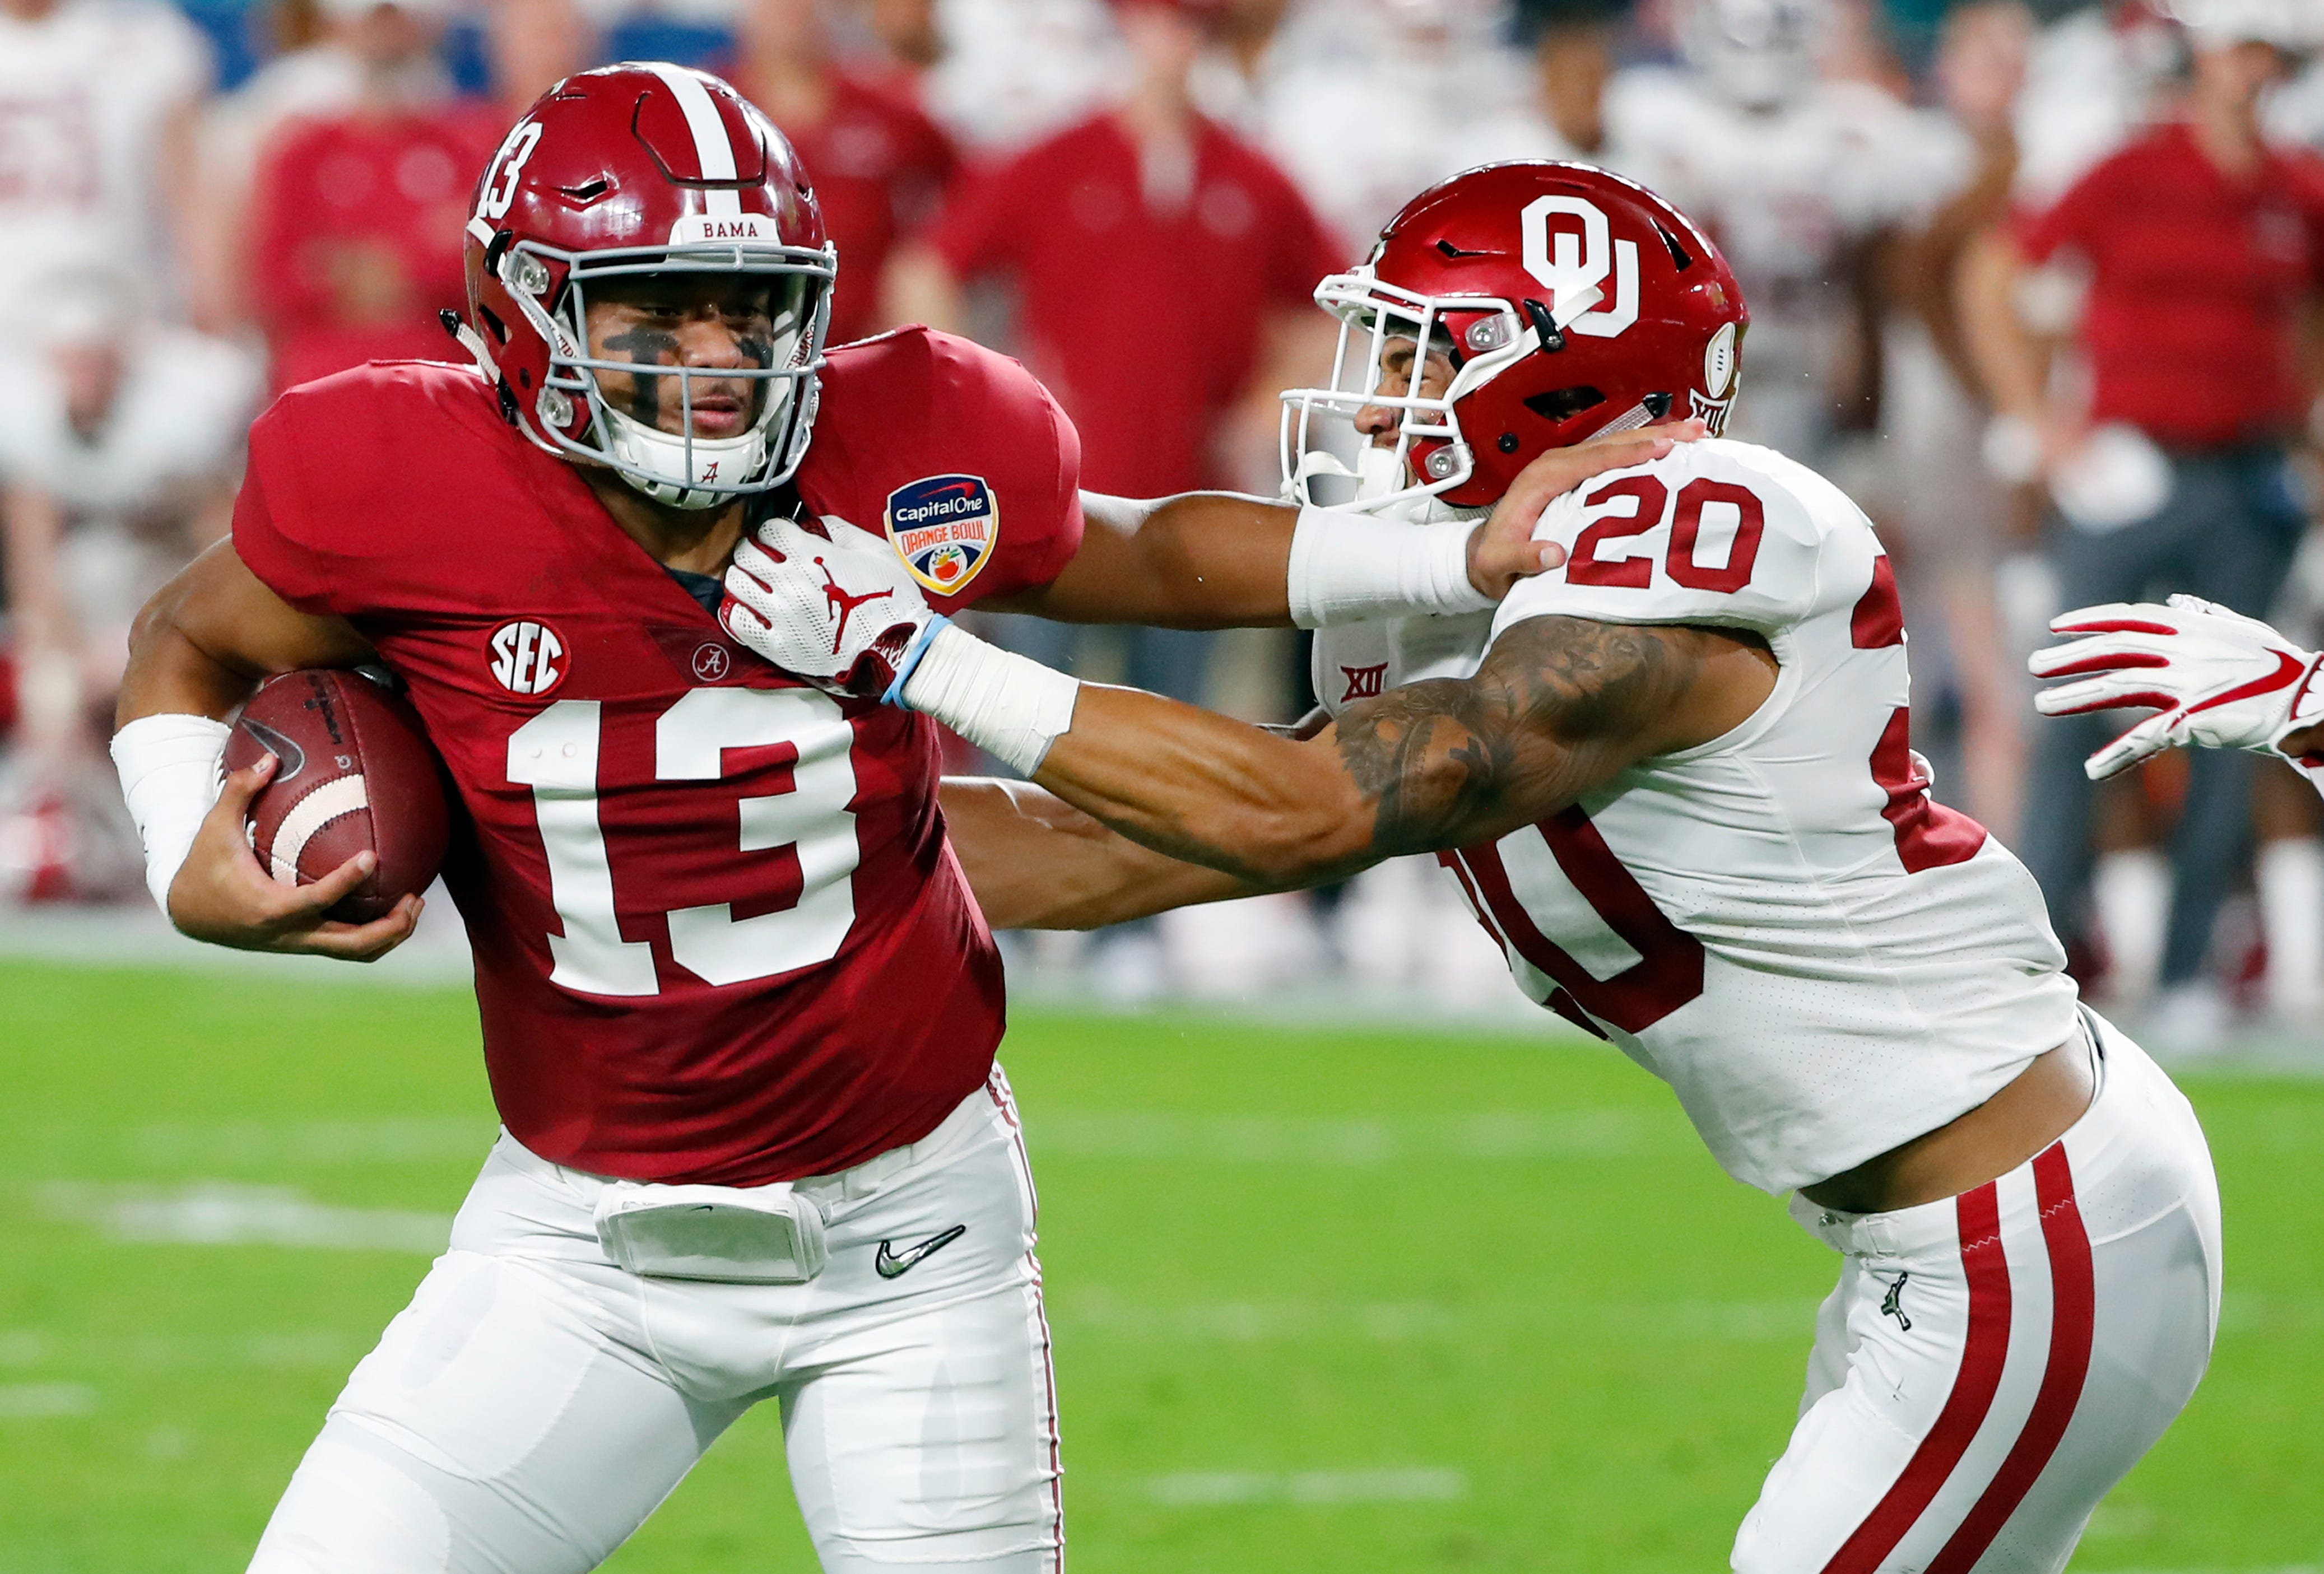 The Latest: Alabama extends its lead, goes up 38-20